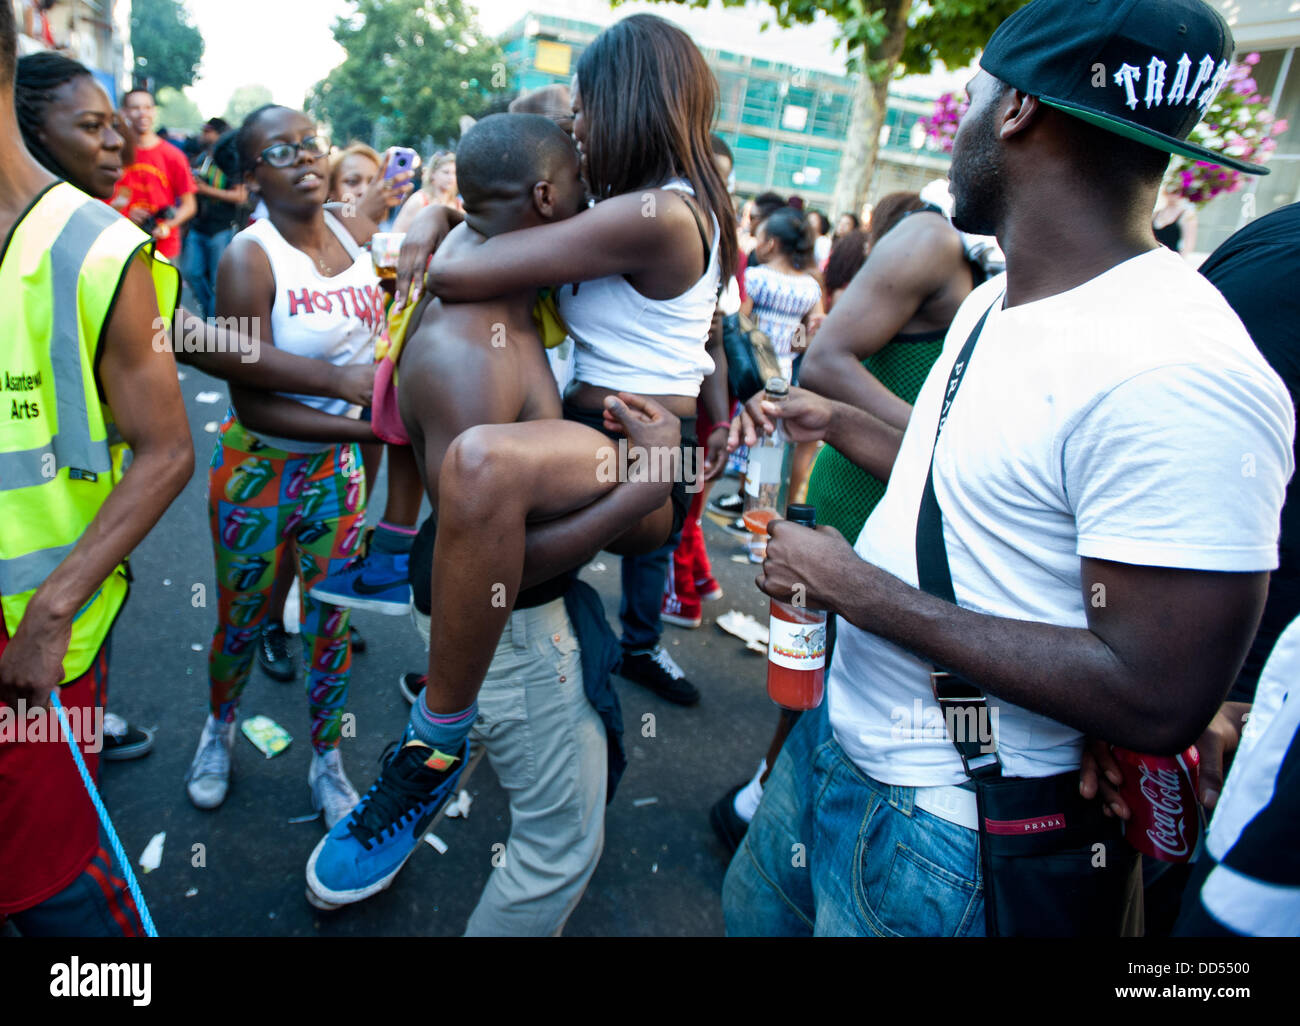 London, UK - 26 August 2013: a couple of revellers dance in front of the camera during the annual parade at the - Stock Image